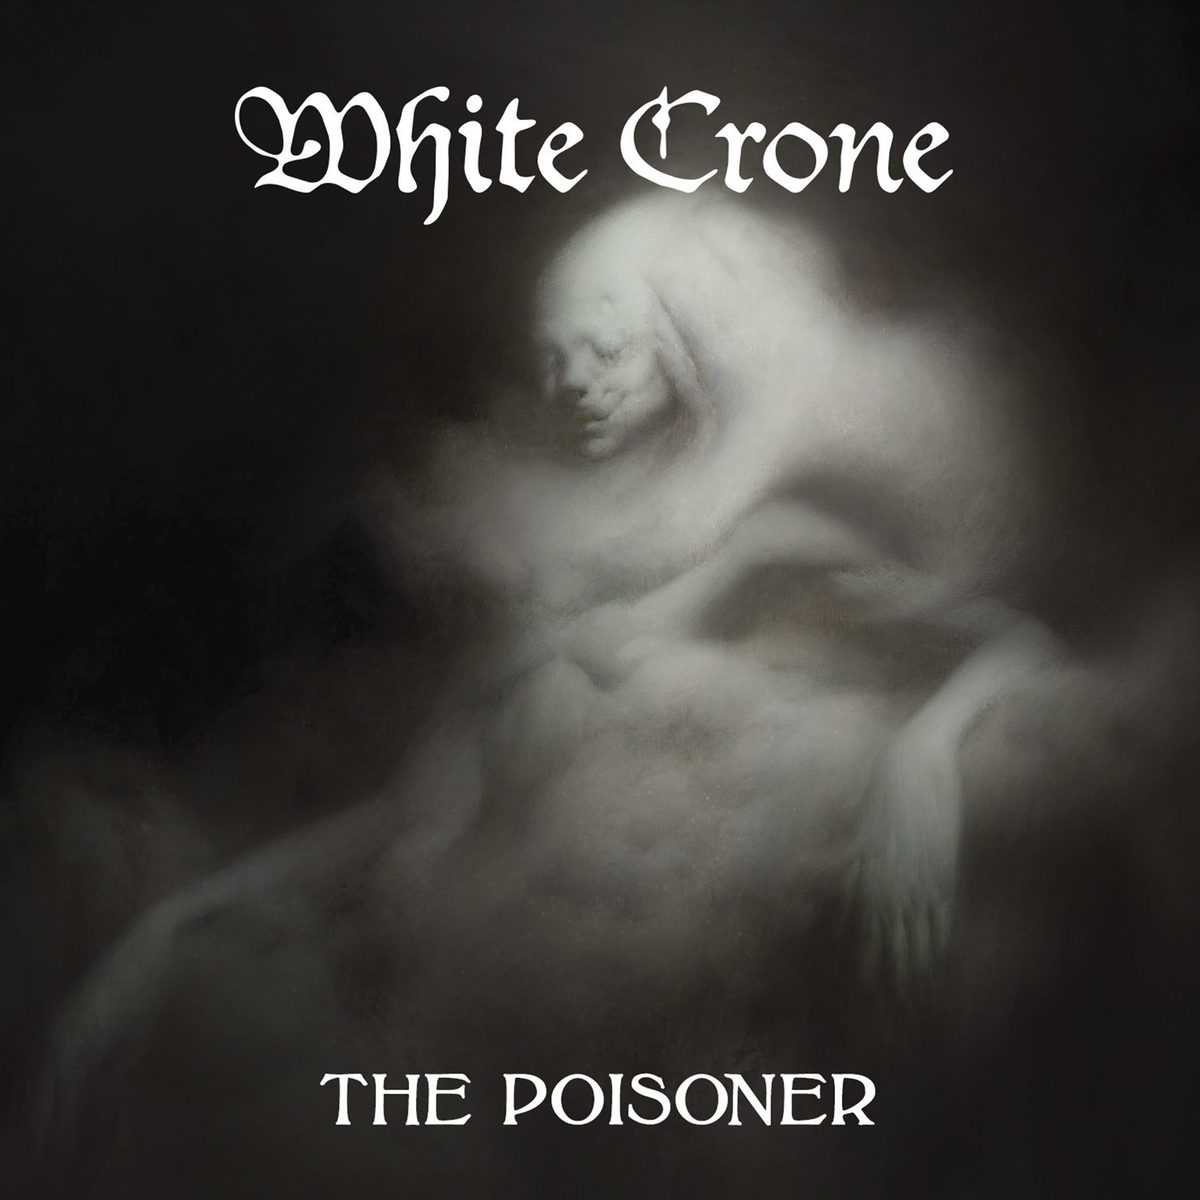 WHITE CRONE (USA) – The poisoner, 2020